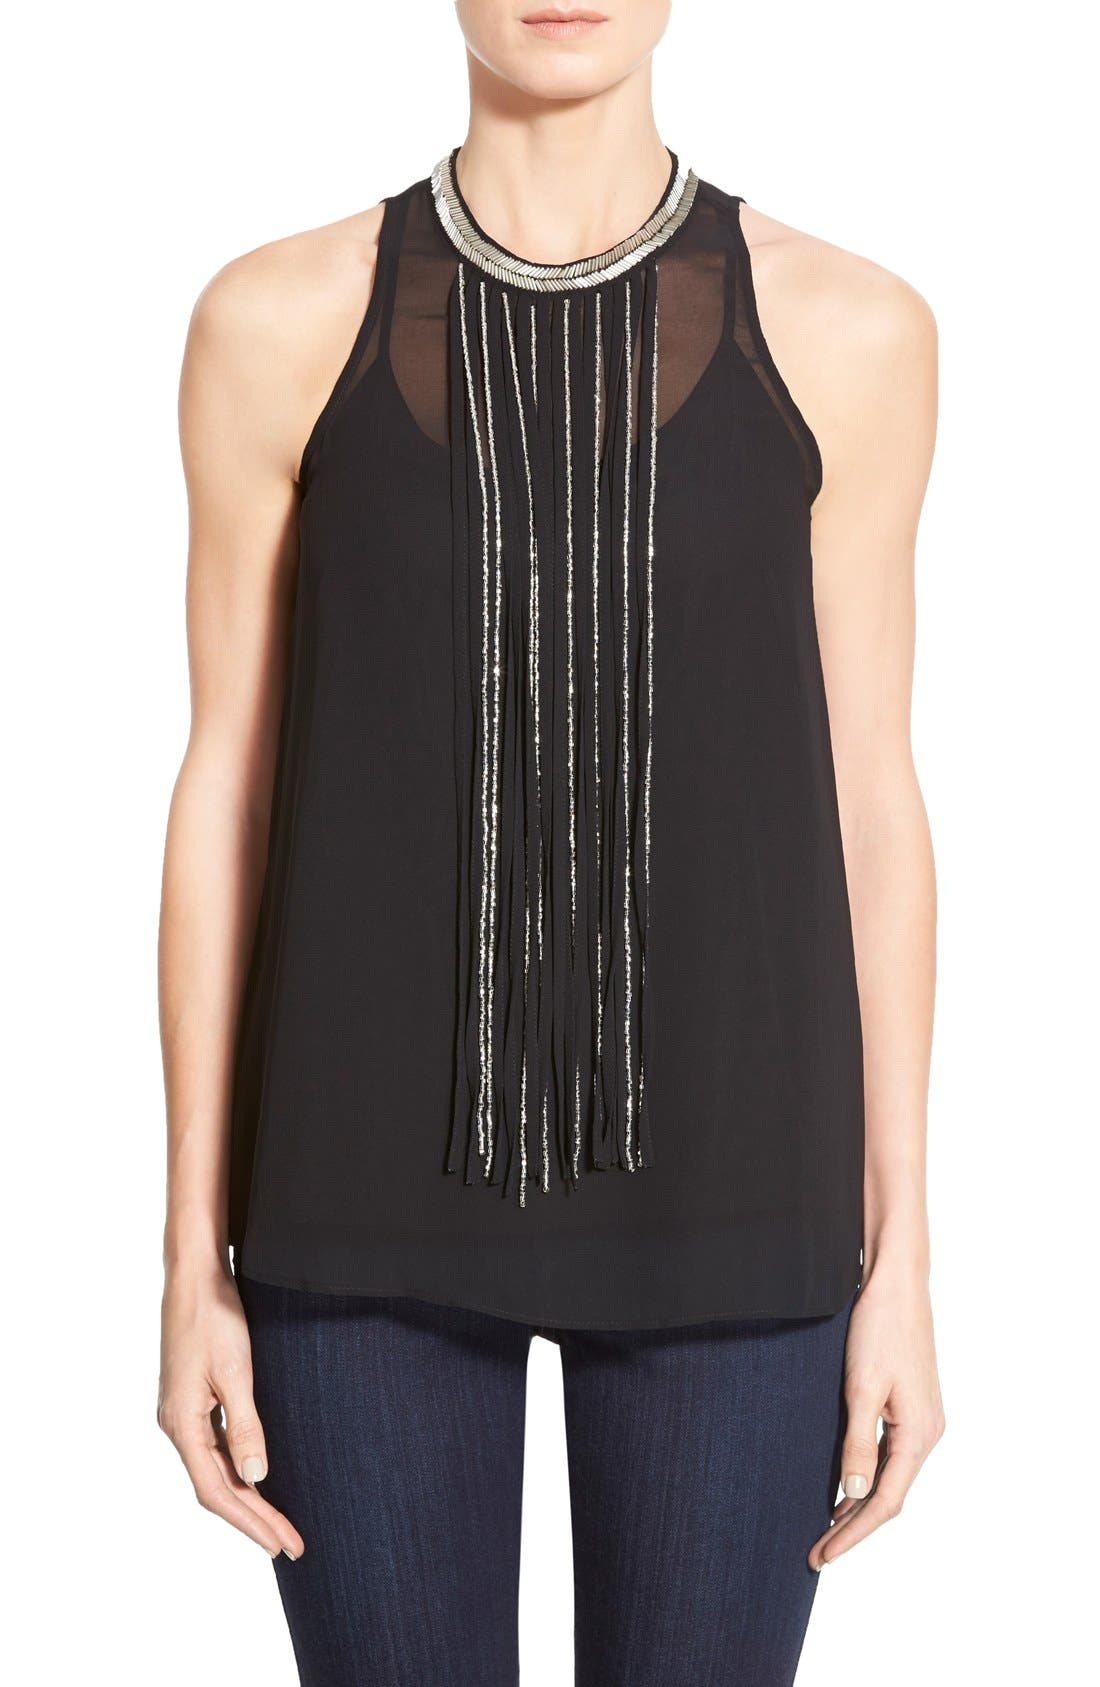 Alternate Image 1 Selected - DKNYC Embellished Fringe Sleeveless Chiffon Top